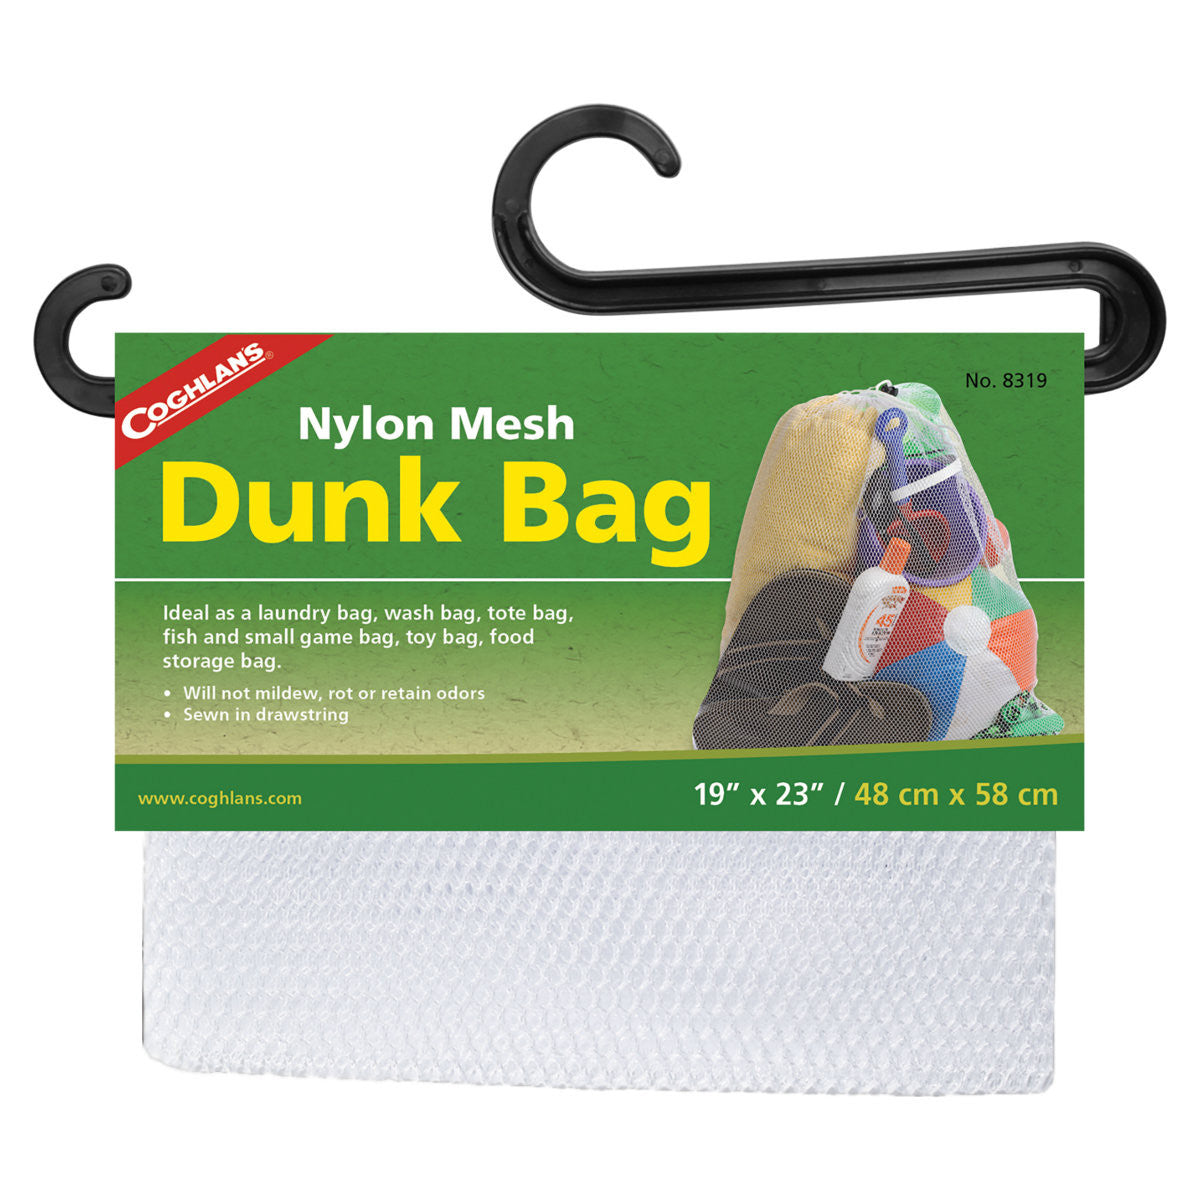 "Coghlan's Nylon Mesh Dunk Bag 19"" x 23"""